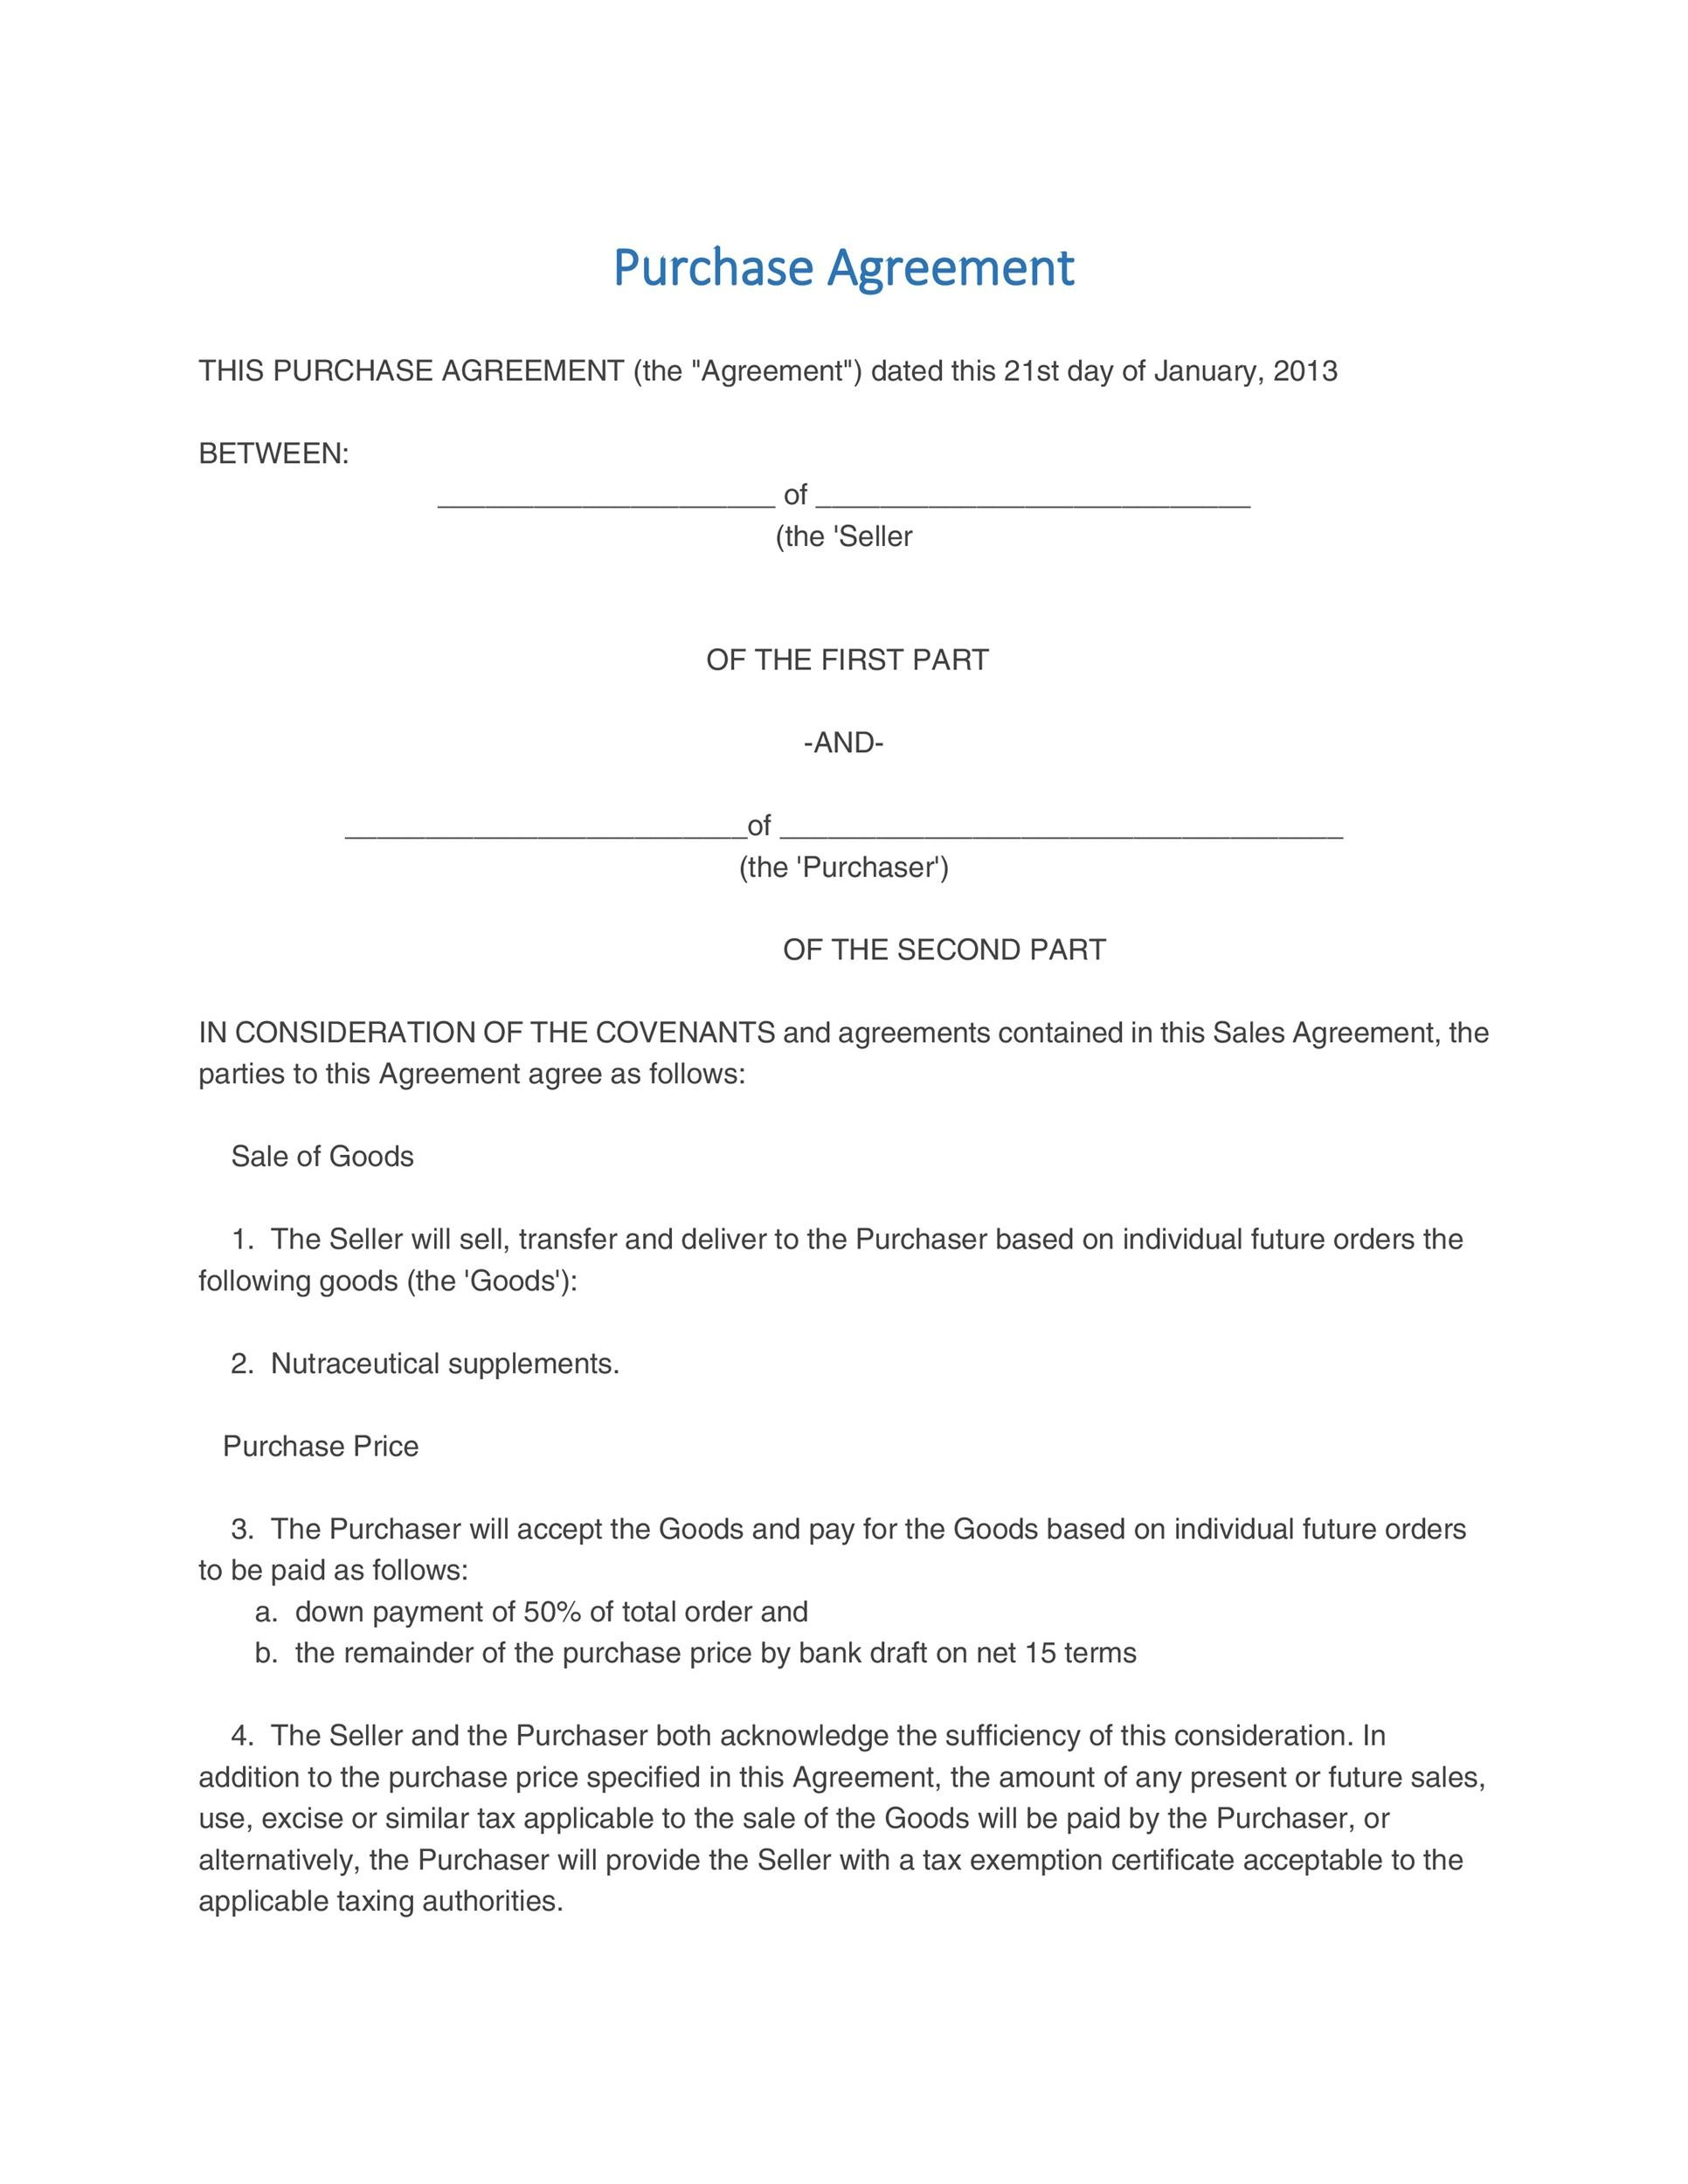 Purchase Agreement Template - Free Purchase Agreement